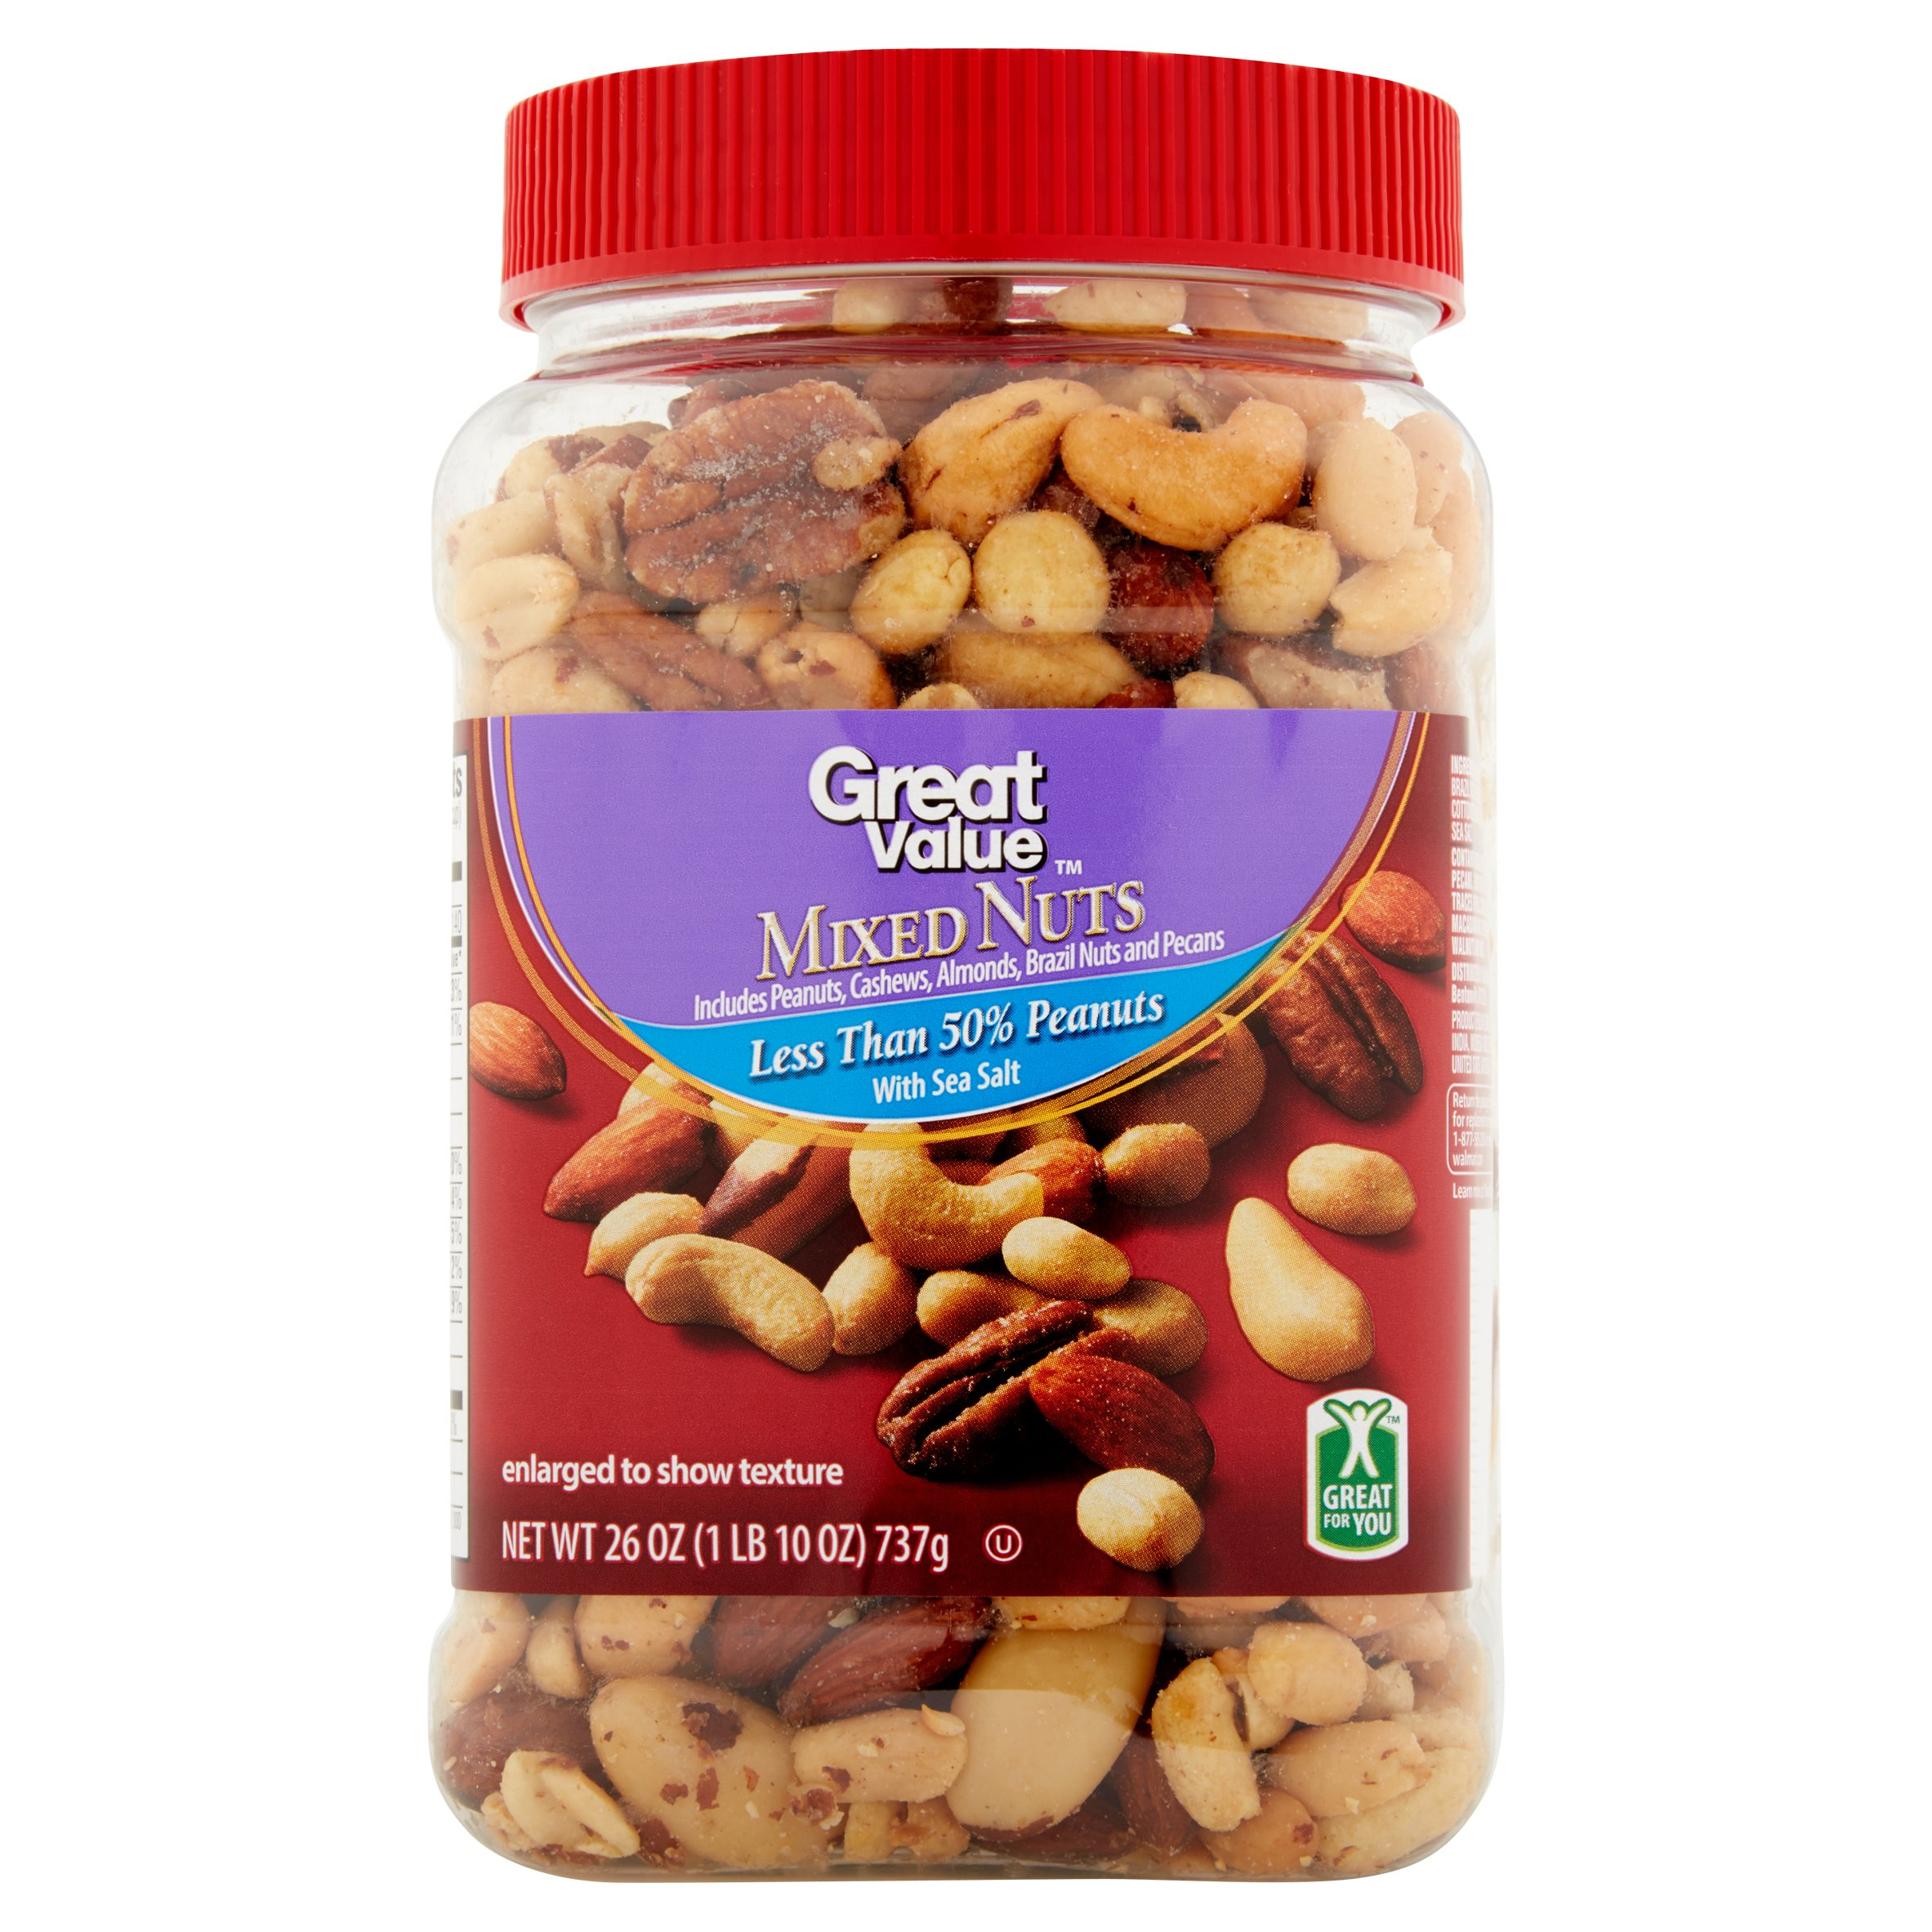 Great Value Mixed Nuts, 26 oz by Wal-Mart Stores, Inc.